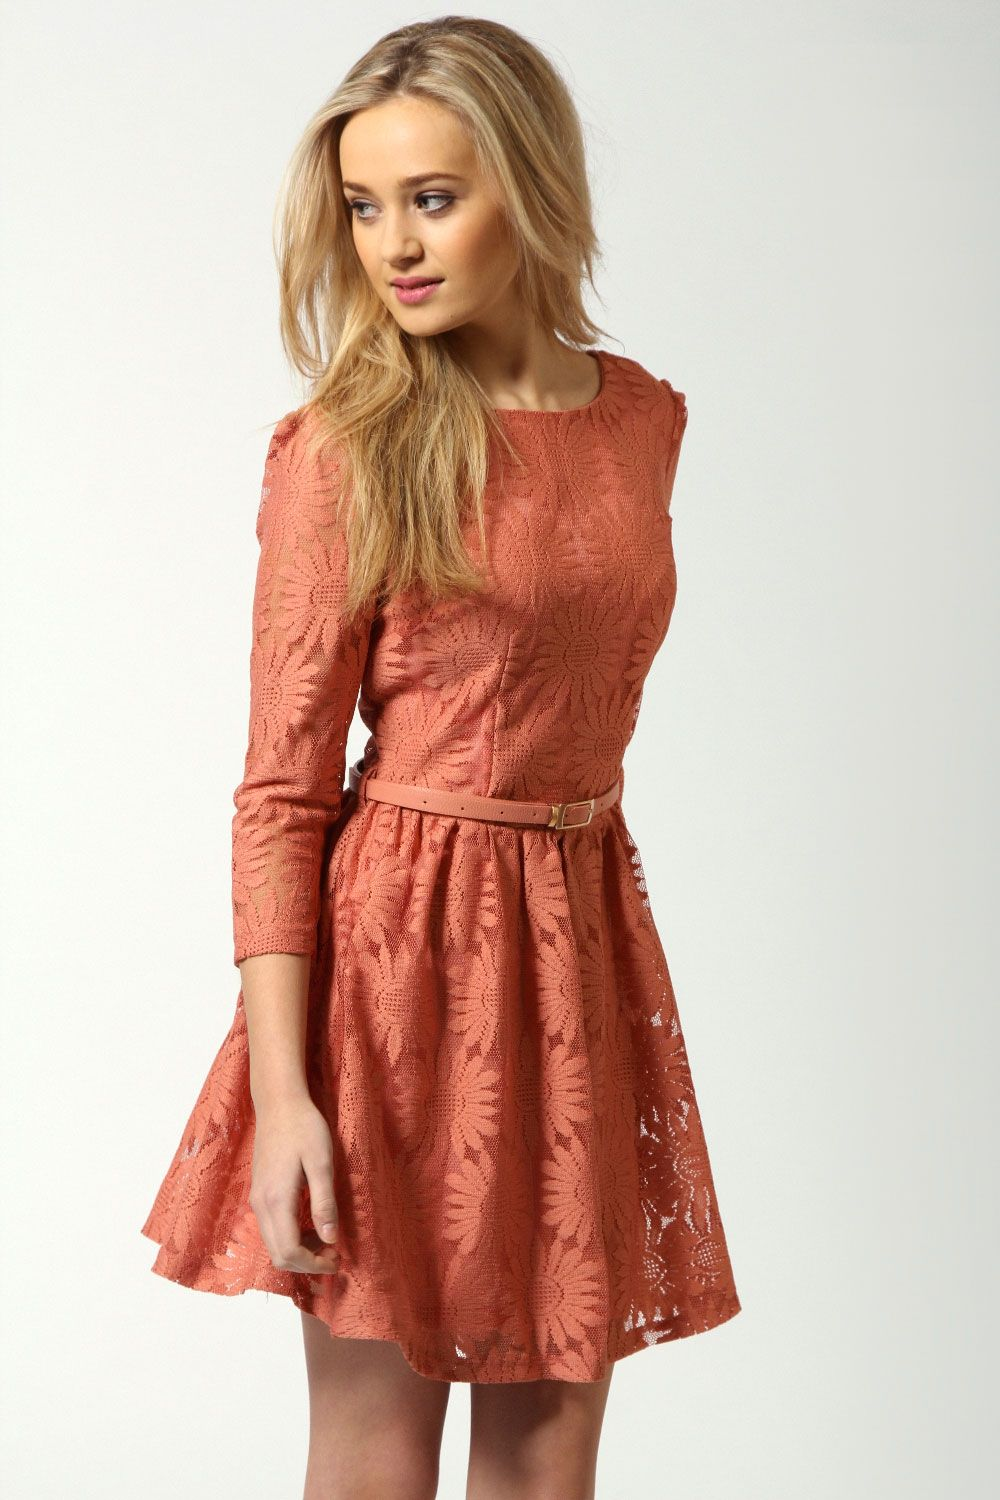 Baker by ted baker babies light pink meshed rose dress debenhams - Find This Pin And More On Dresses By Ciarabanana